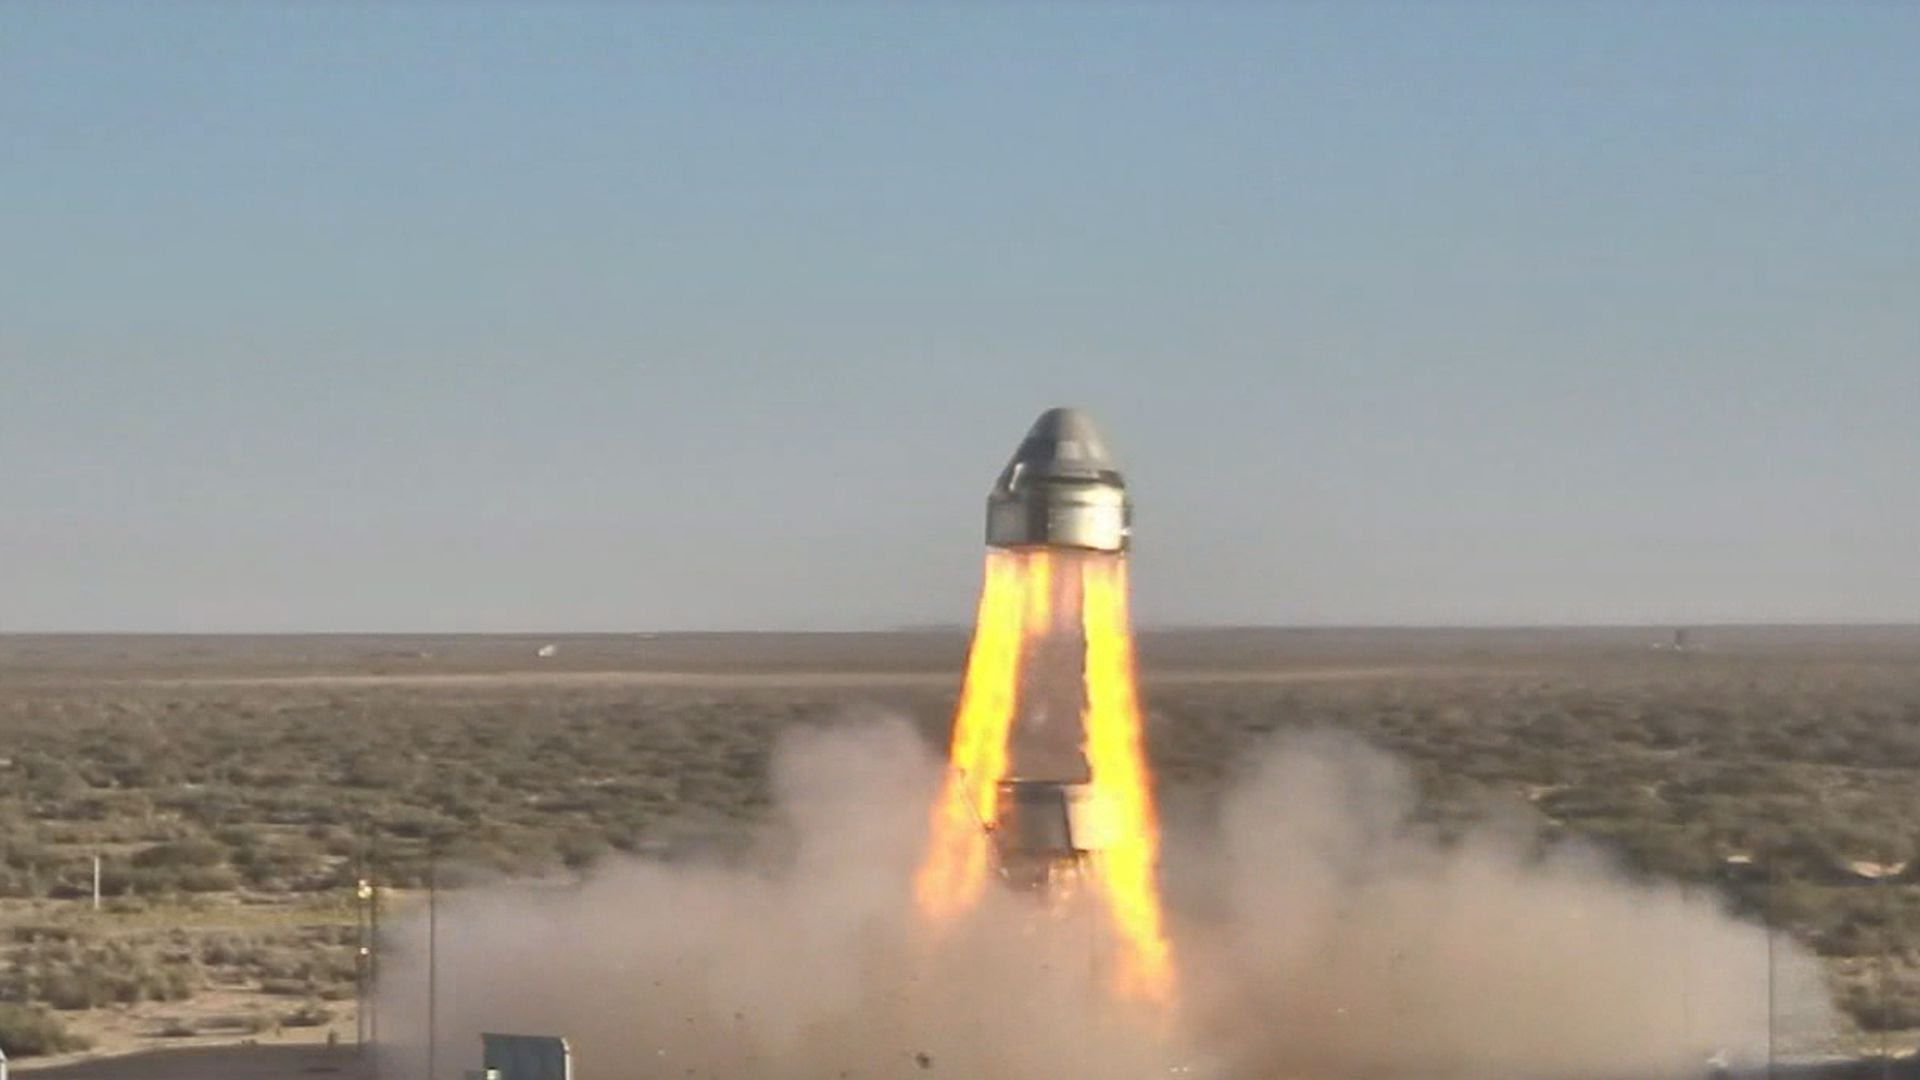 Boeing's Starliner during a test of its abort system in New Mexico